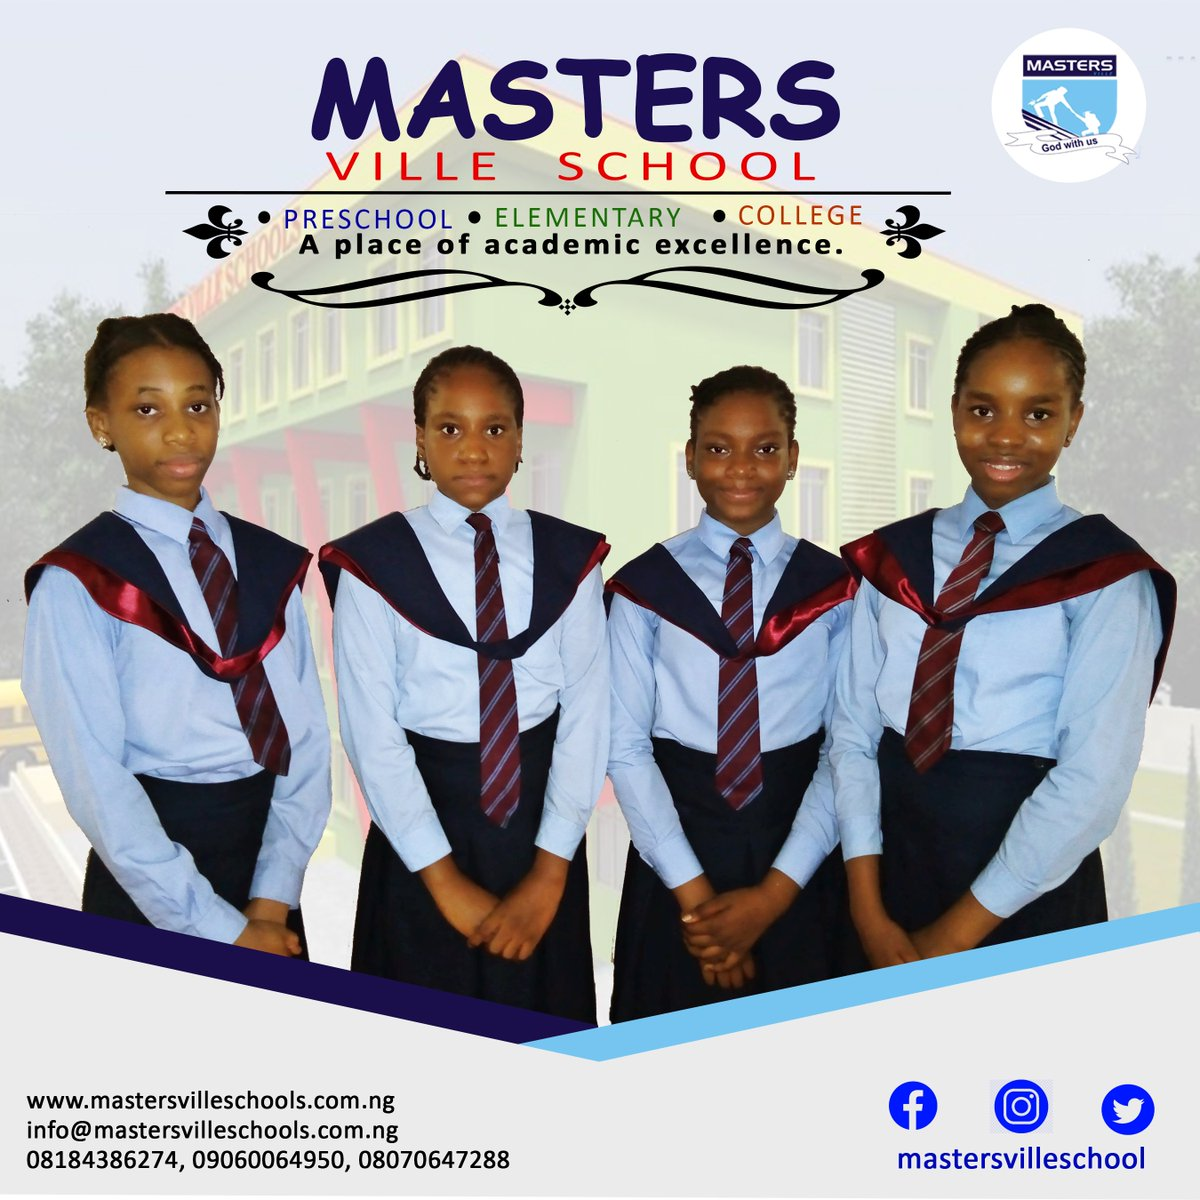 Masters Ville School brings academic excellence to your door step. #mastersvilleschool #elementaryschool #preschool #college #ajaoestate #schoolsinlagos #schoolsinnigeria #privateschoolsinlagos https://t.co/8UlYKTBtzs